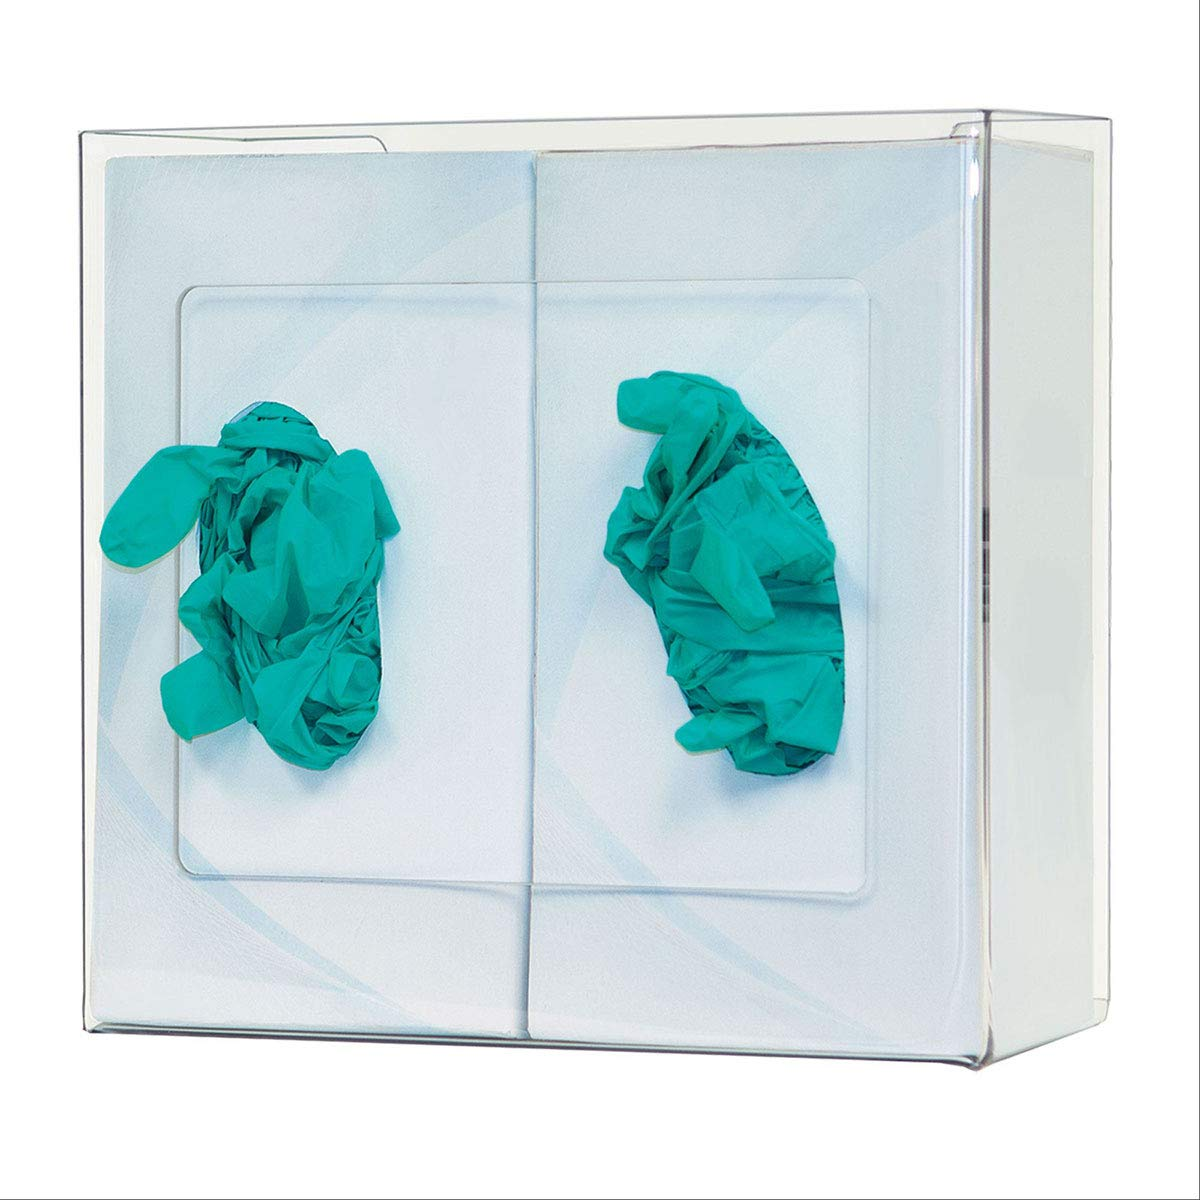 CeilBlue PETG Non-Divided Glove Super beauty product restock New product!! quality top Box Dispenser - Double